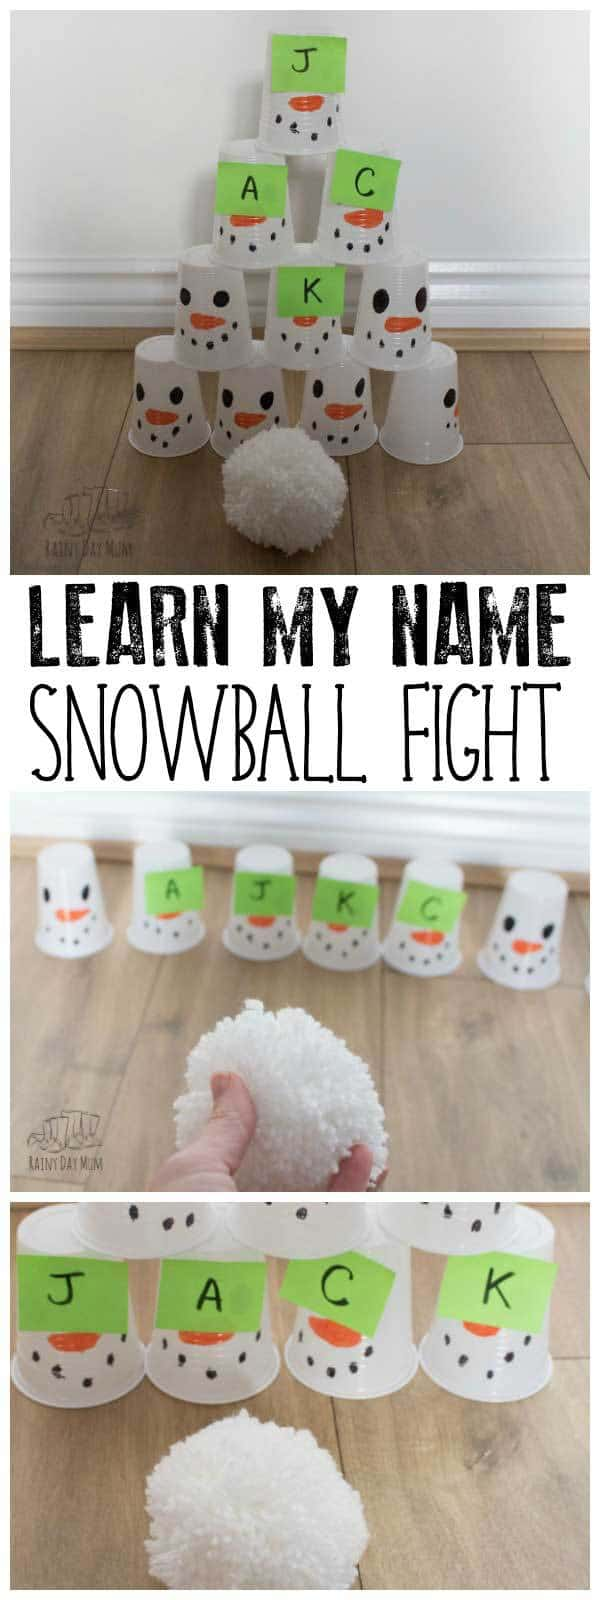 Fun indoor game for toddlers and preschoolers to work on learning to read, write and spell their names. Hit the snowmen and spell out their name, perfect to accompany The Snowy Day by Ezra Jack Keats.